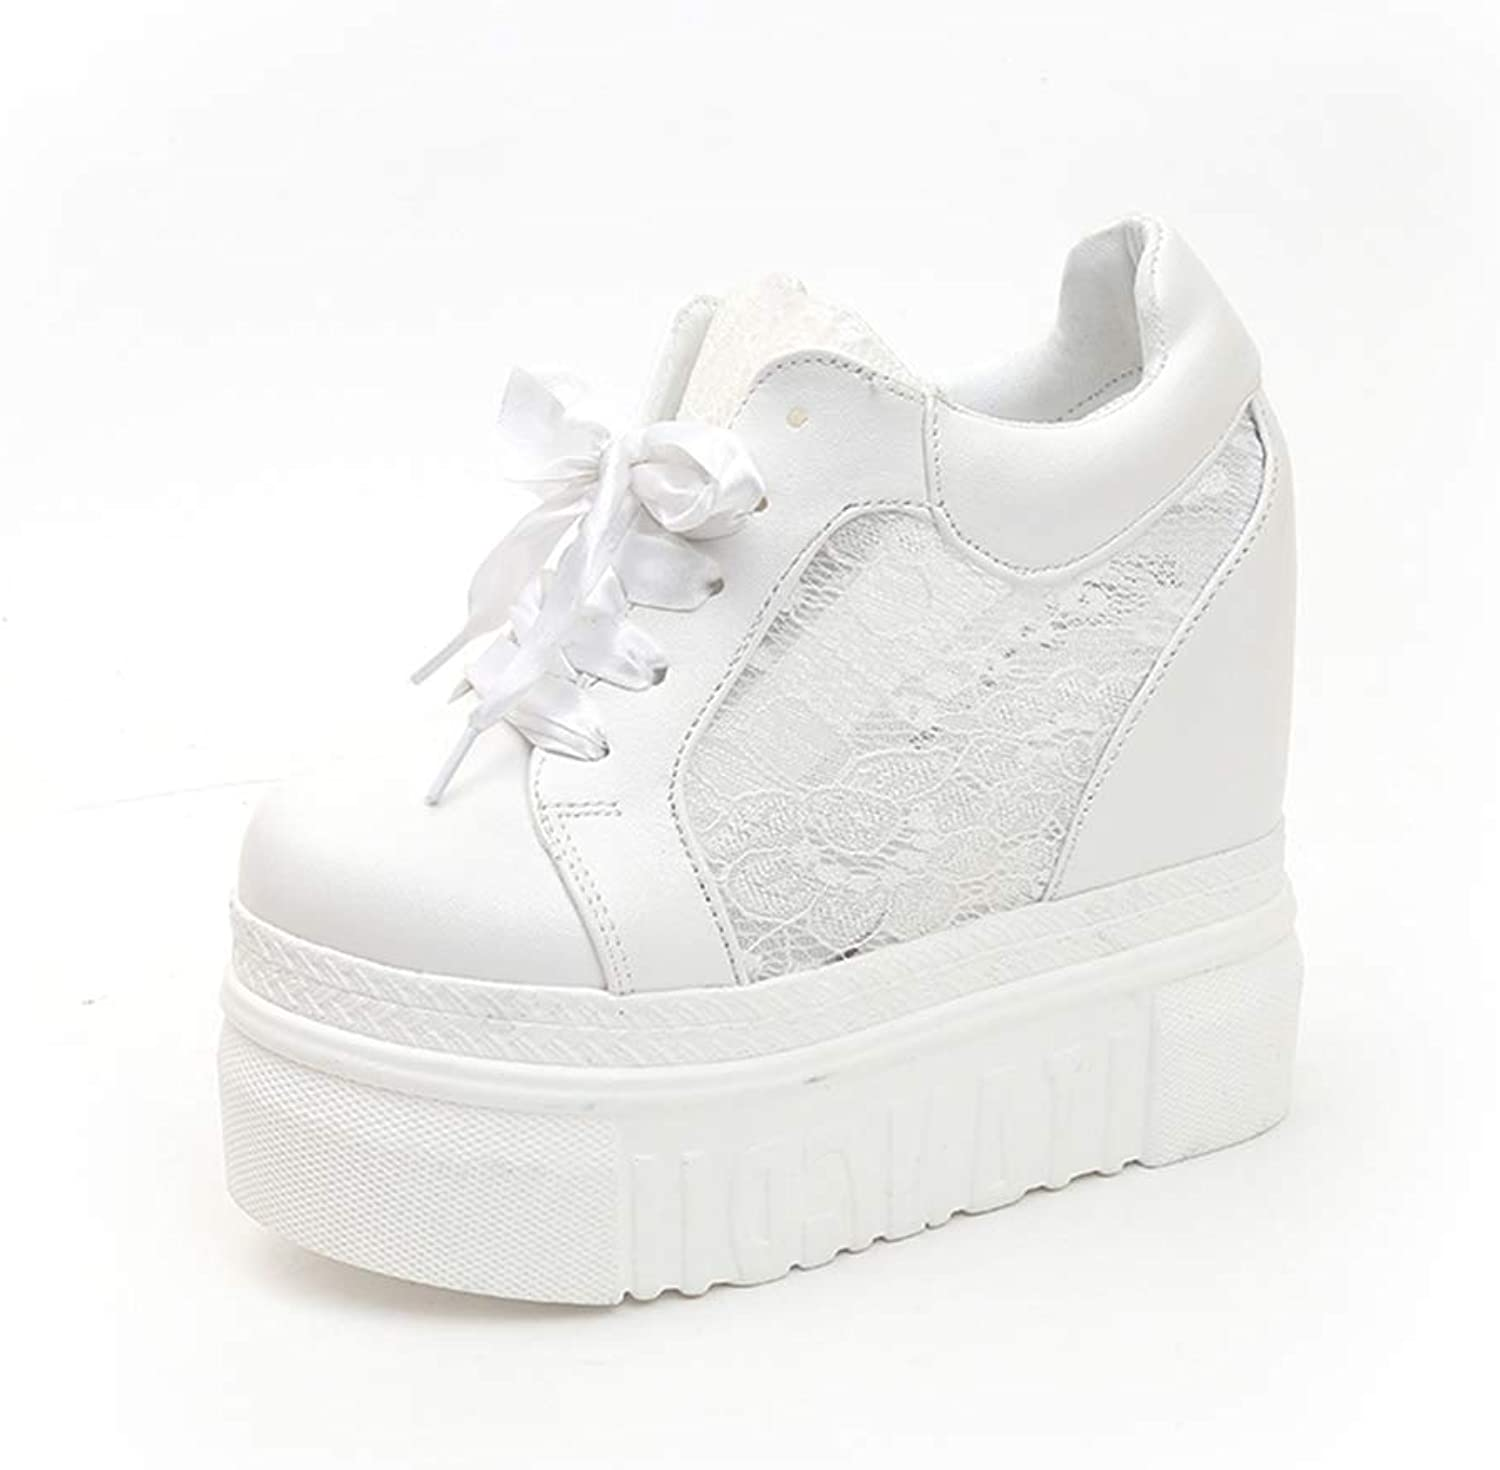 Btrada New Women Summer Platform Casual Wedges Sneakers Ladies Fashion 13CM Height Increased shoes